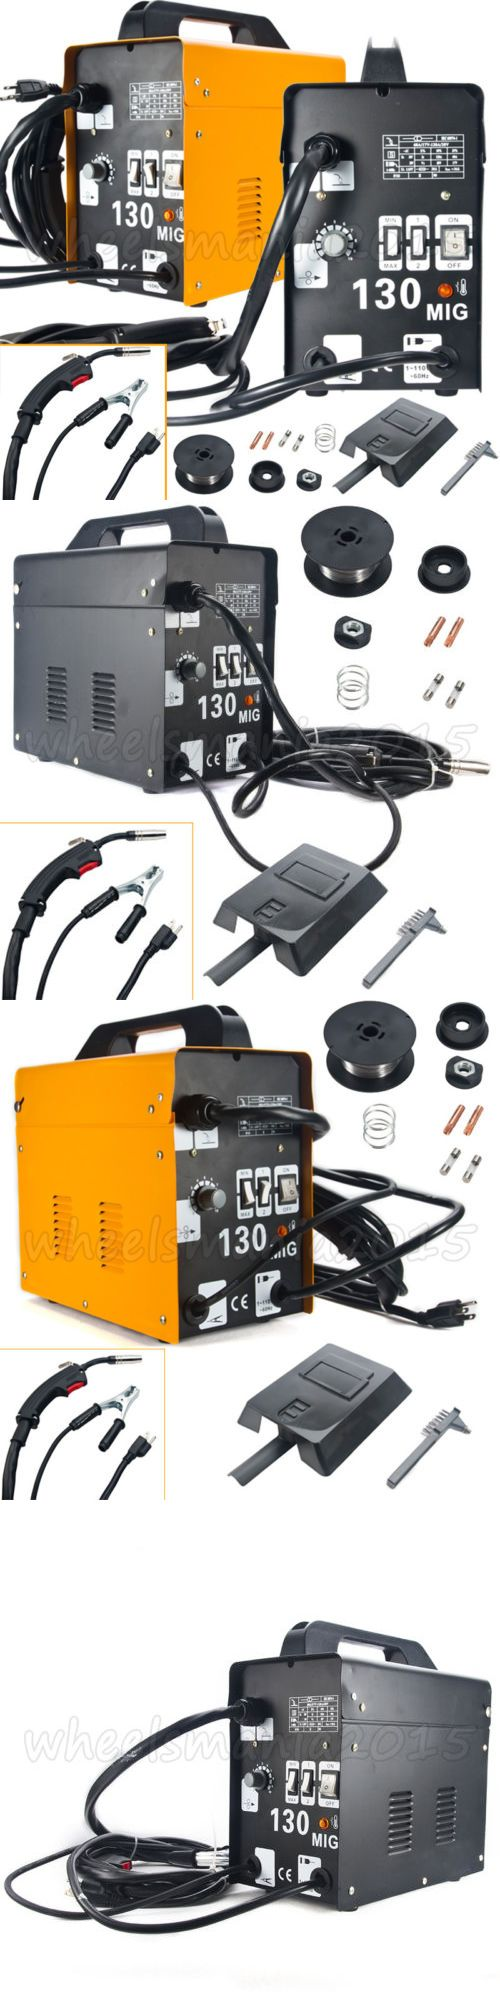 Welding and Soldering Tools 46413: Gas Less Mig Welder Auto Flux Core Wire Feed Welding Machine Diy Mig130 W Mask -> BUY IT NOW ONLY: $88.59 on eBay!